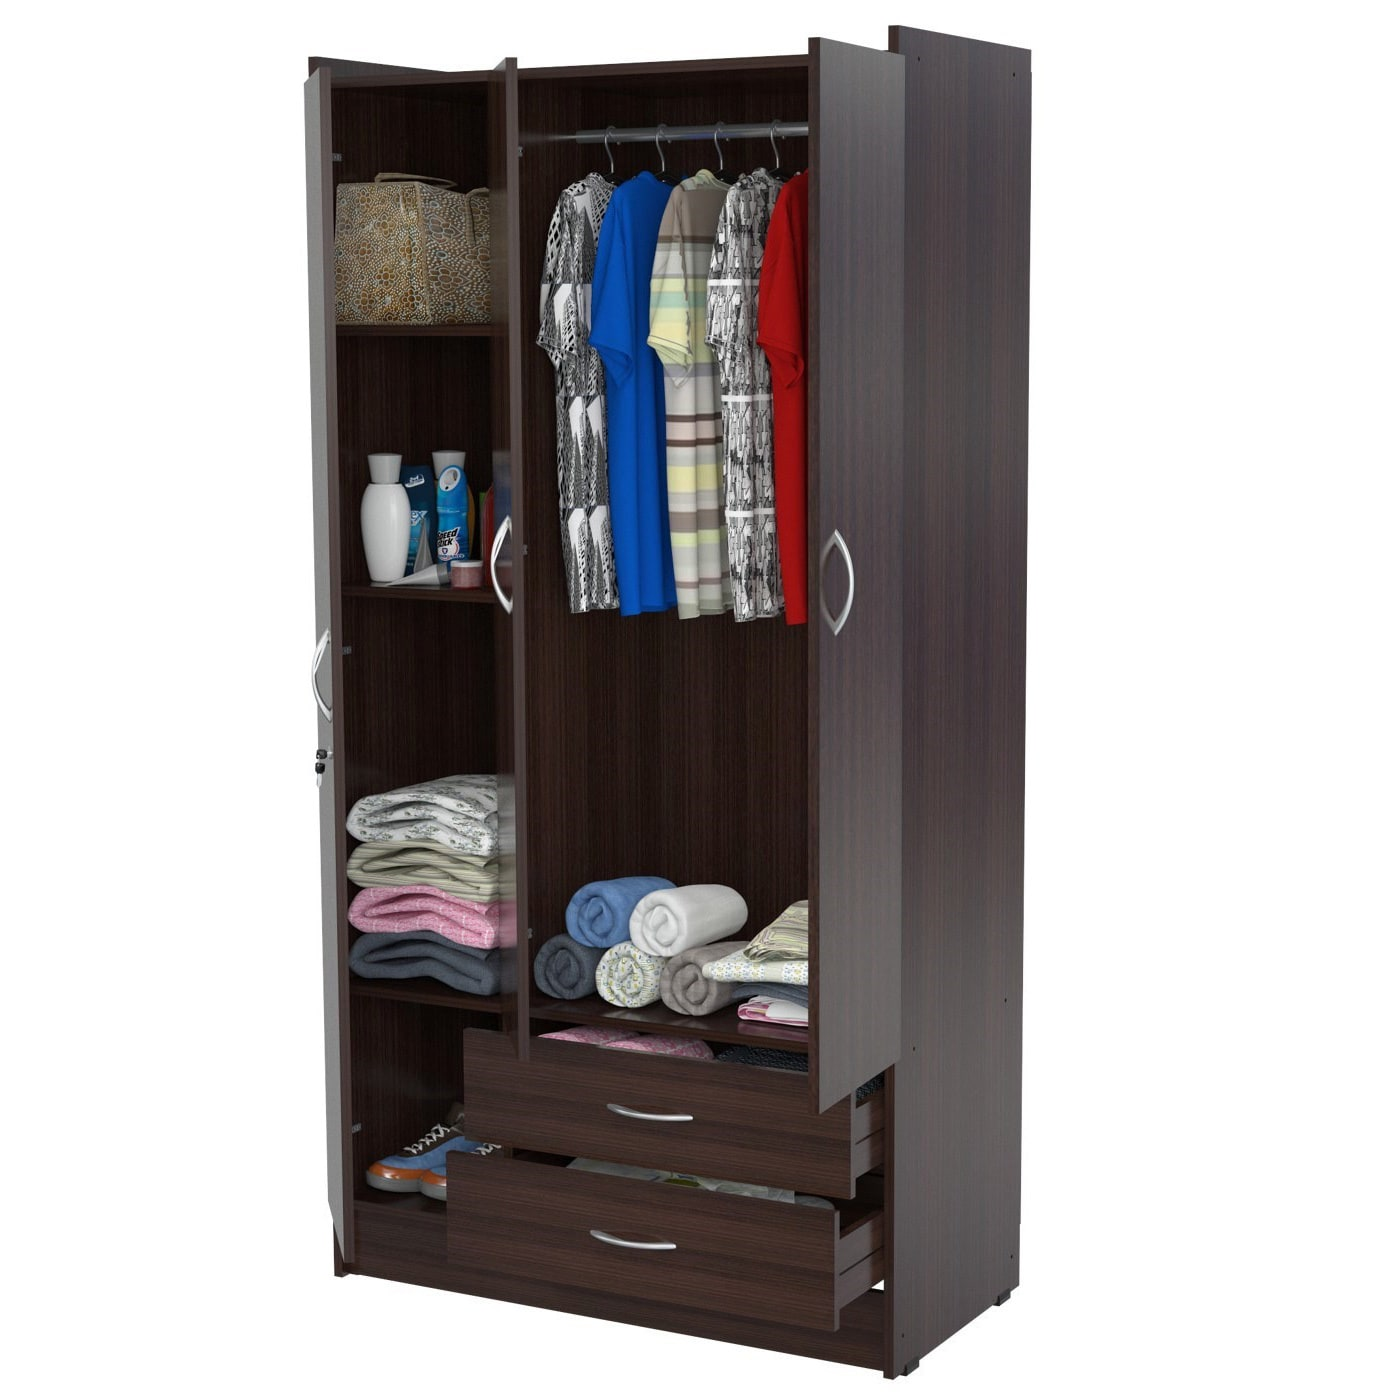 Three-door Espresso Armoire